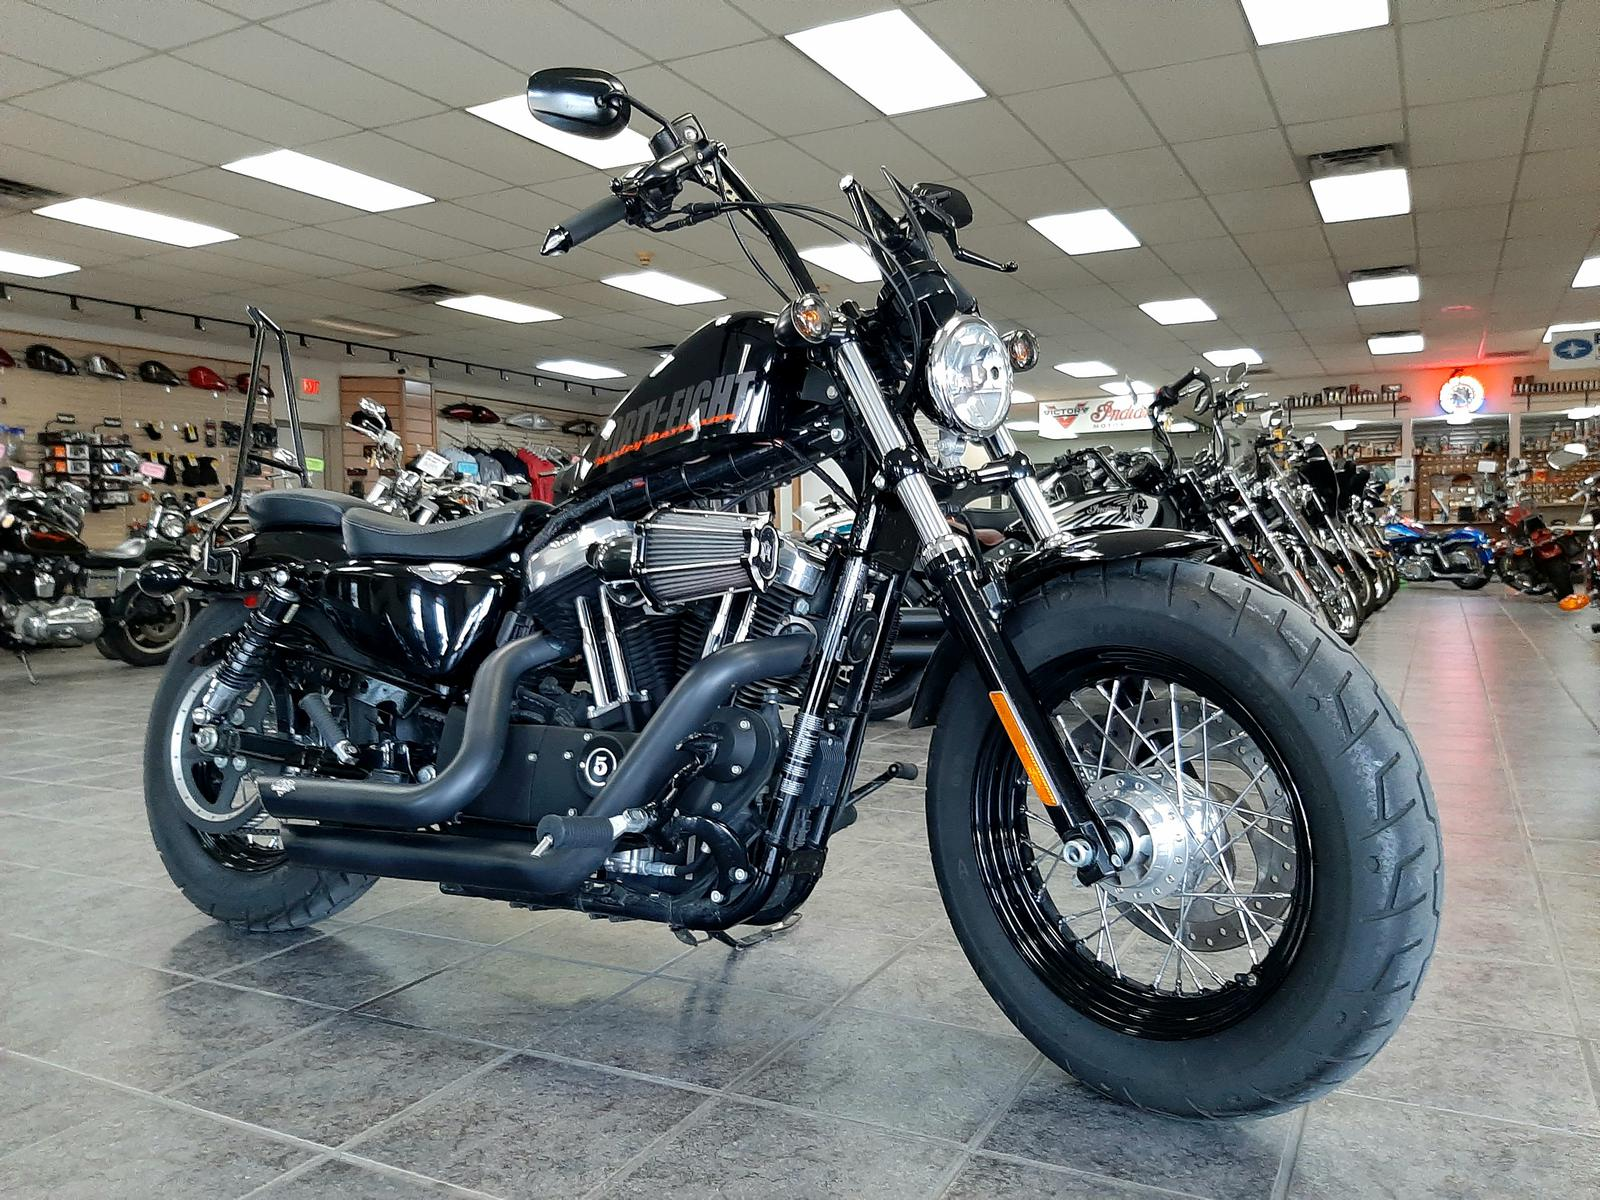 2014 Harley Davidson Sportster Forty Eight Xl1200x For Sale In Fort Wayne In Osborn Usa Fort Wayne In 260 422 5942